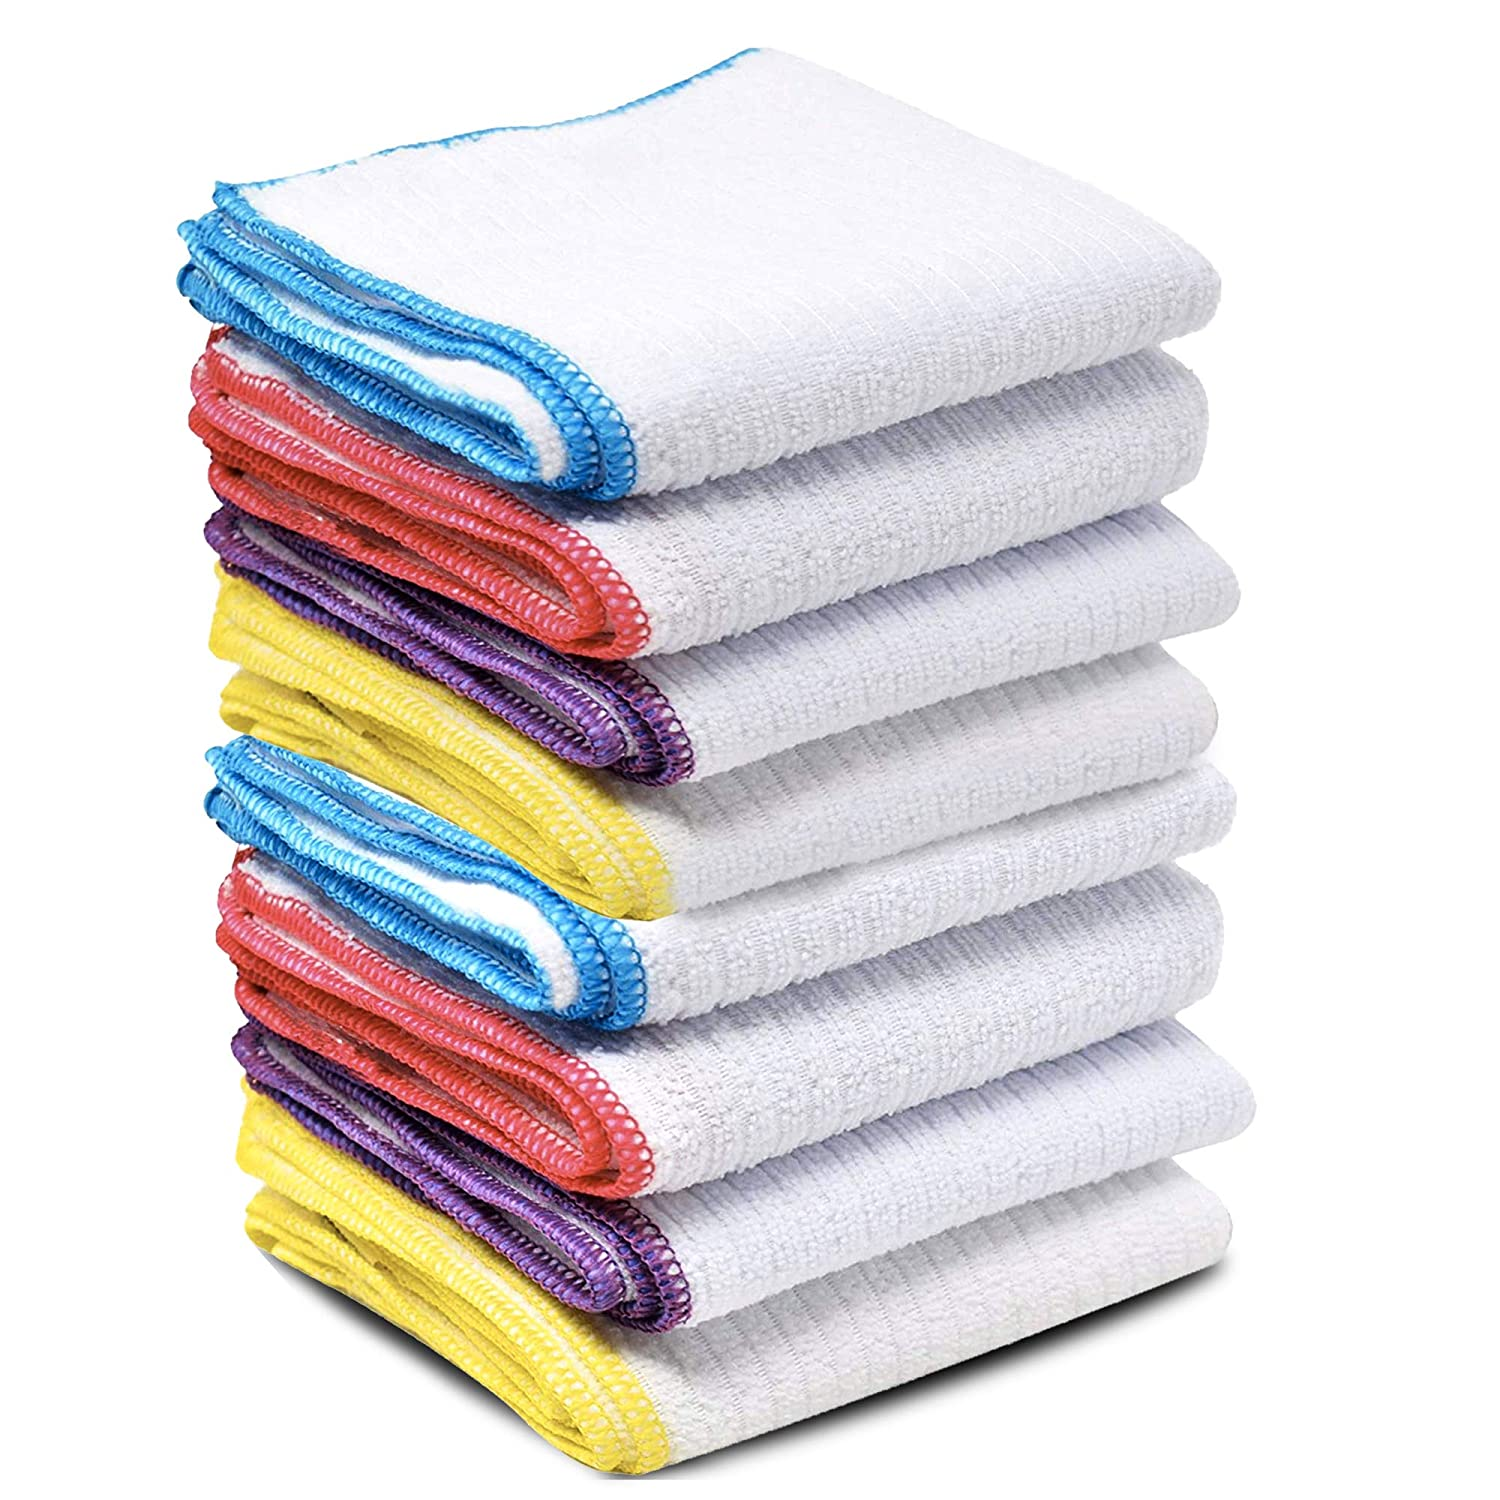 Pack of 10 Microfibre Dish Cloths Ultra Absorbent Multipurpose Kitchen Cleaning Cloths Lint Free/ 30x30cm Pack of 10